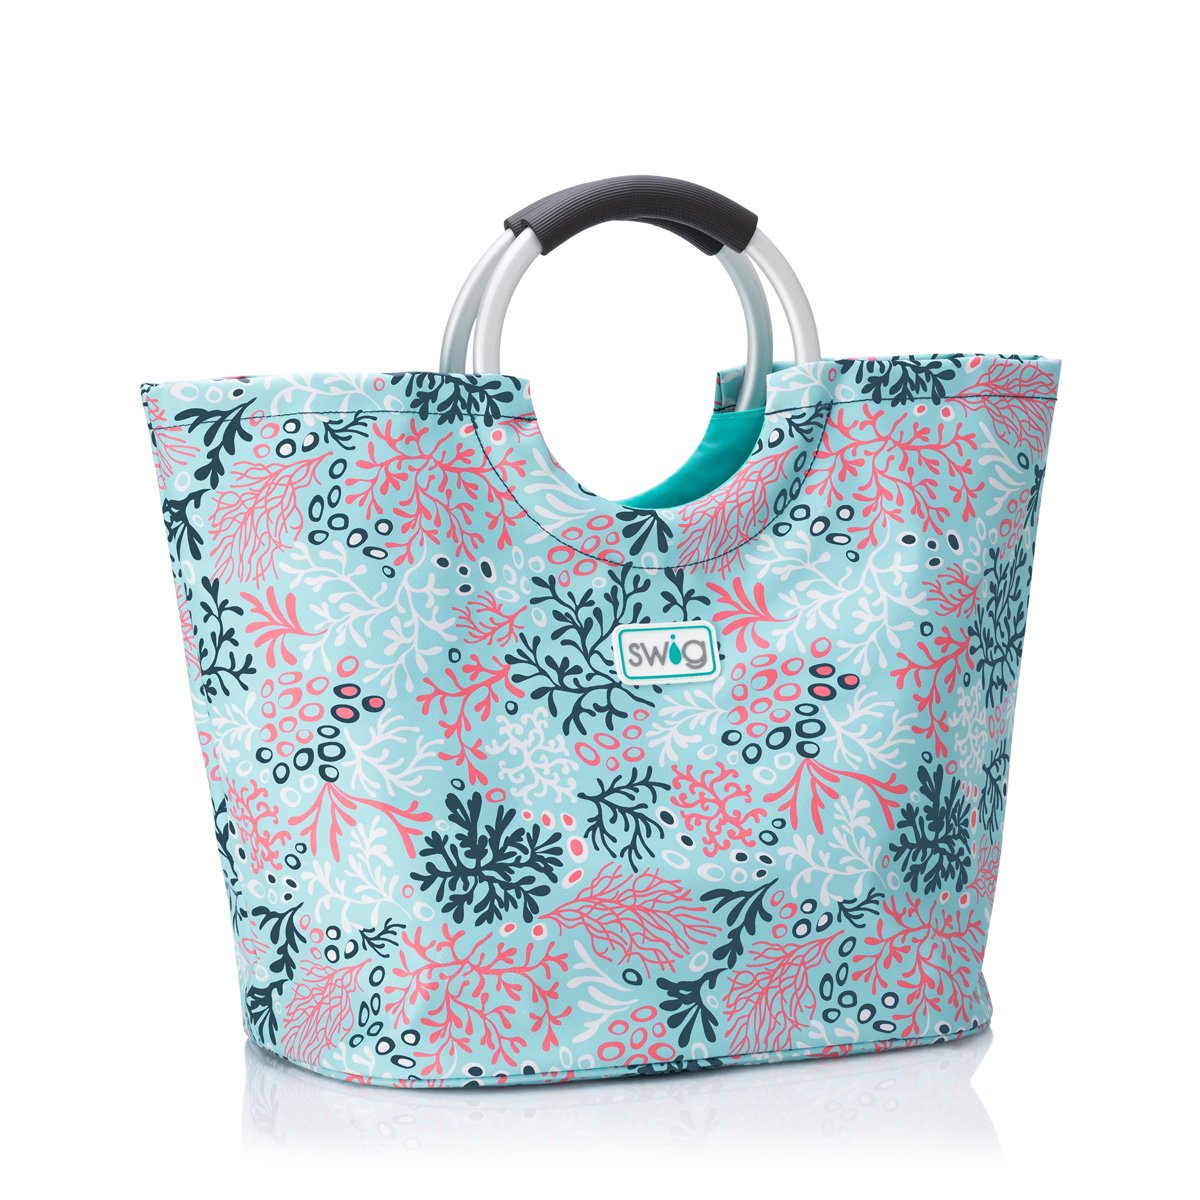 Coral Me Crazy Loopi Tote Bag